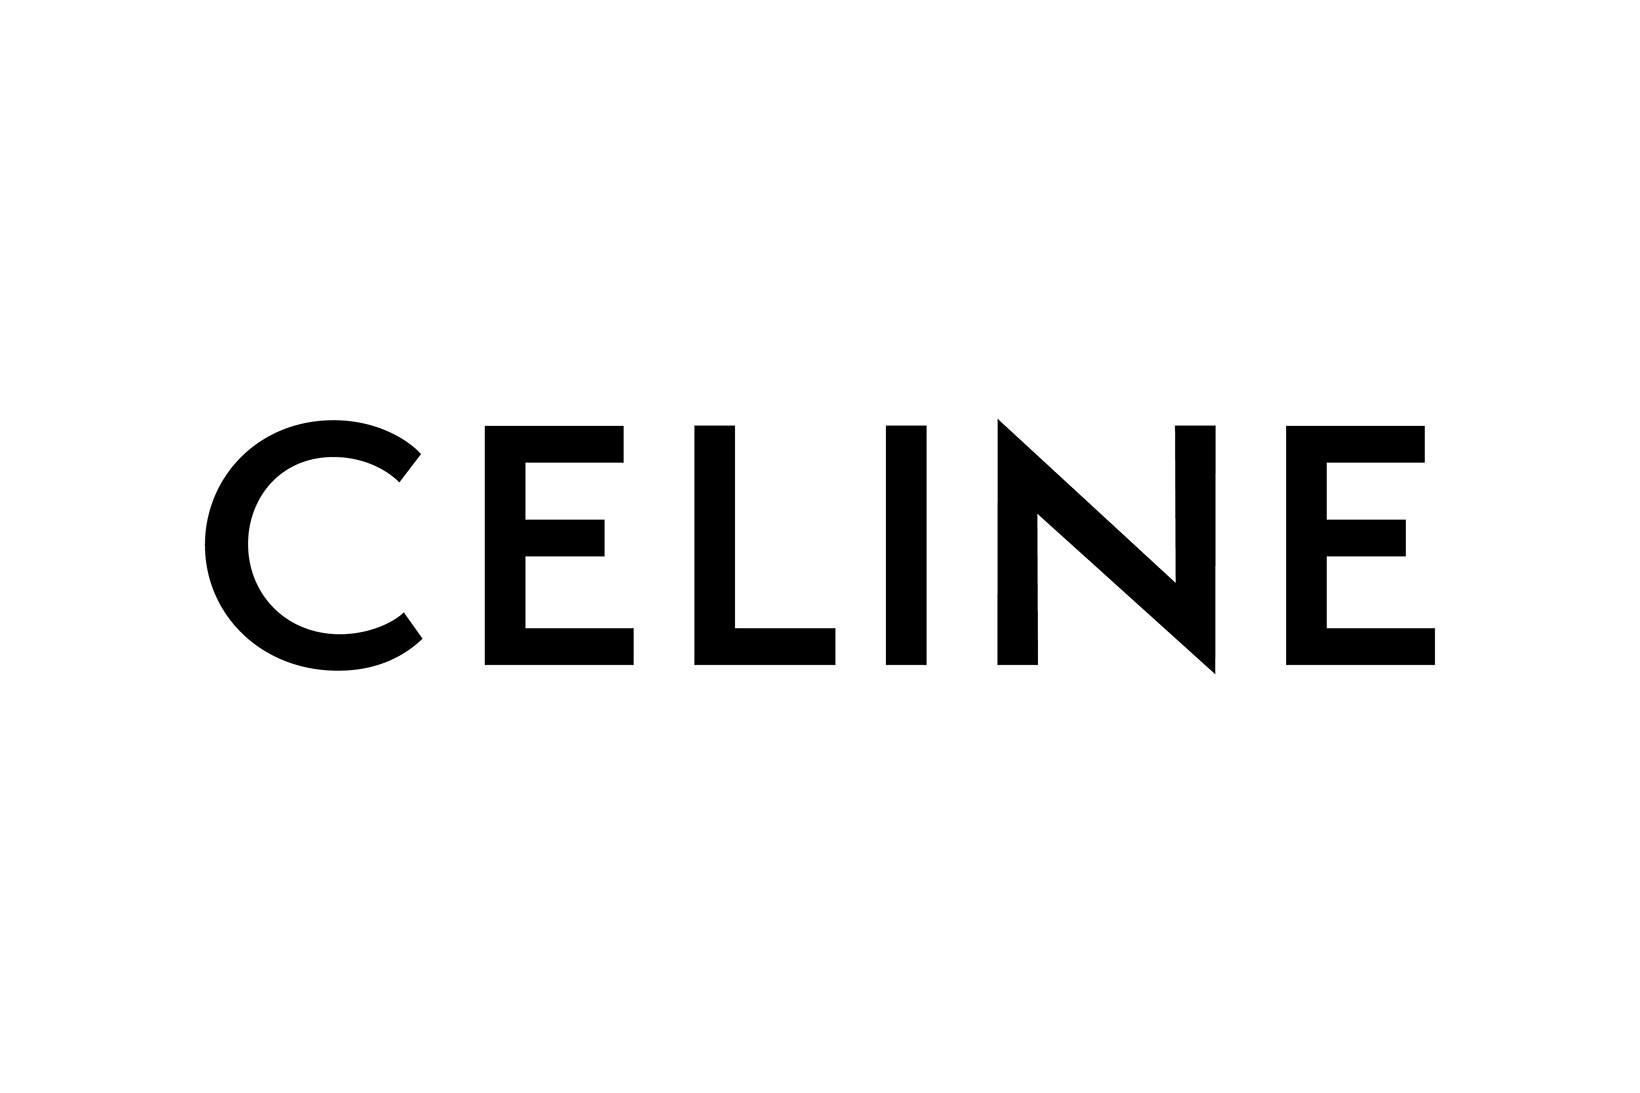 Word Celine in black on a white background